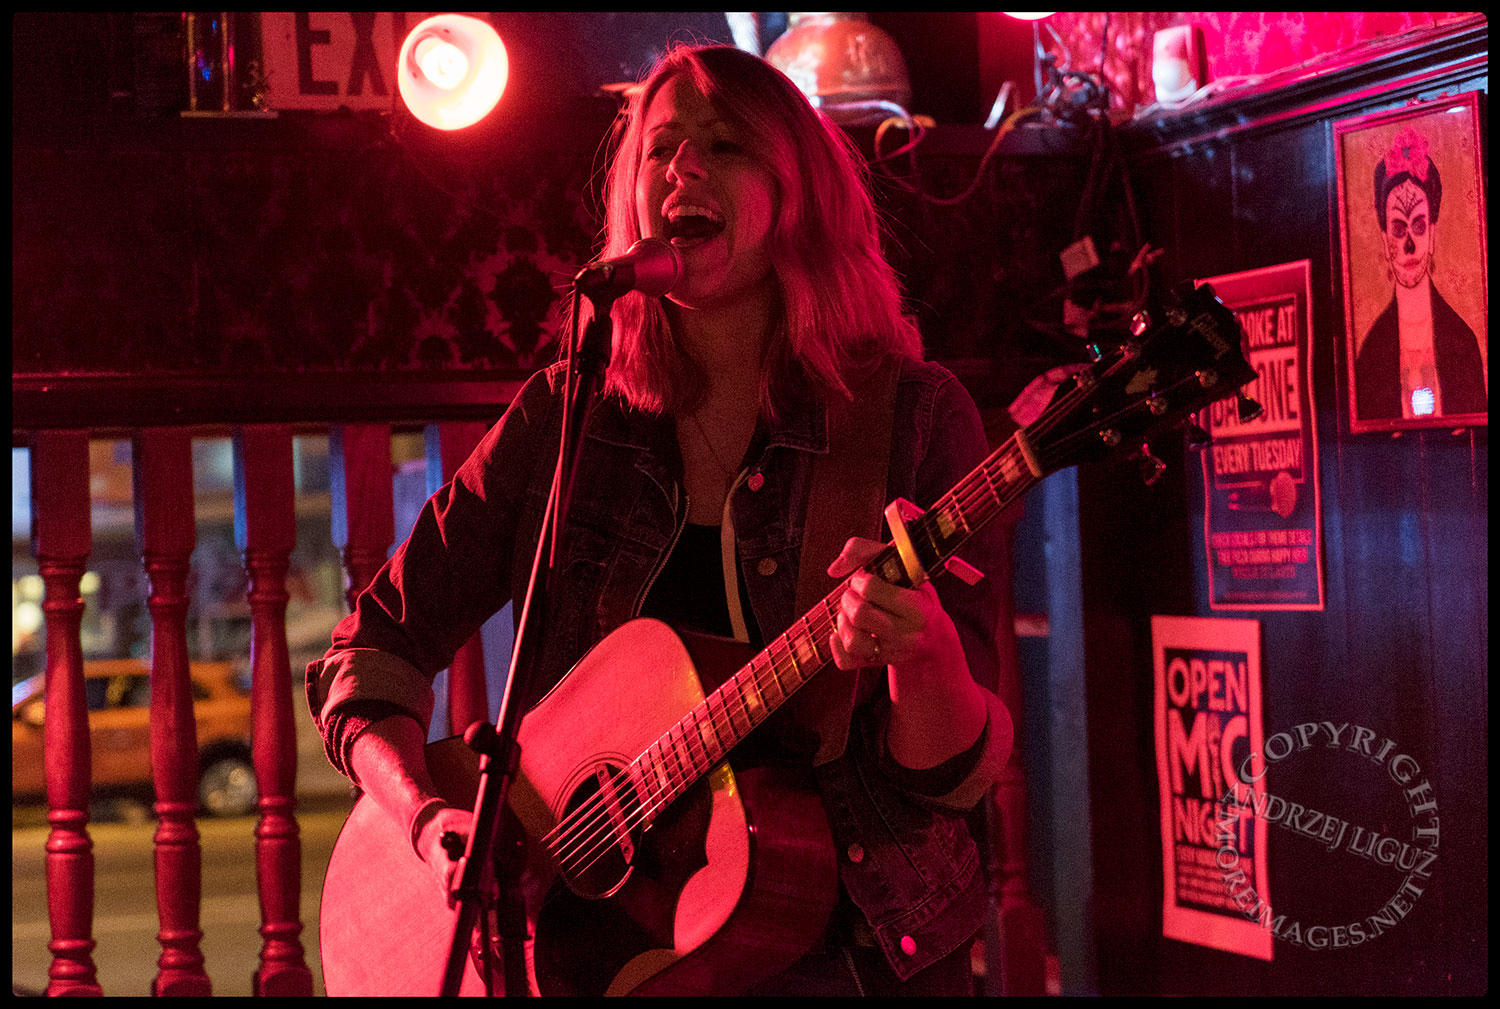 Emily Zuzik performing at The Ugly Truth Songwriter Night